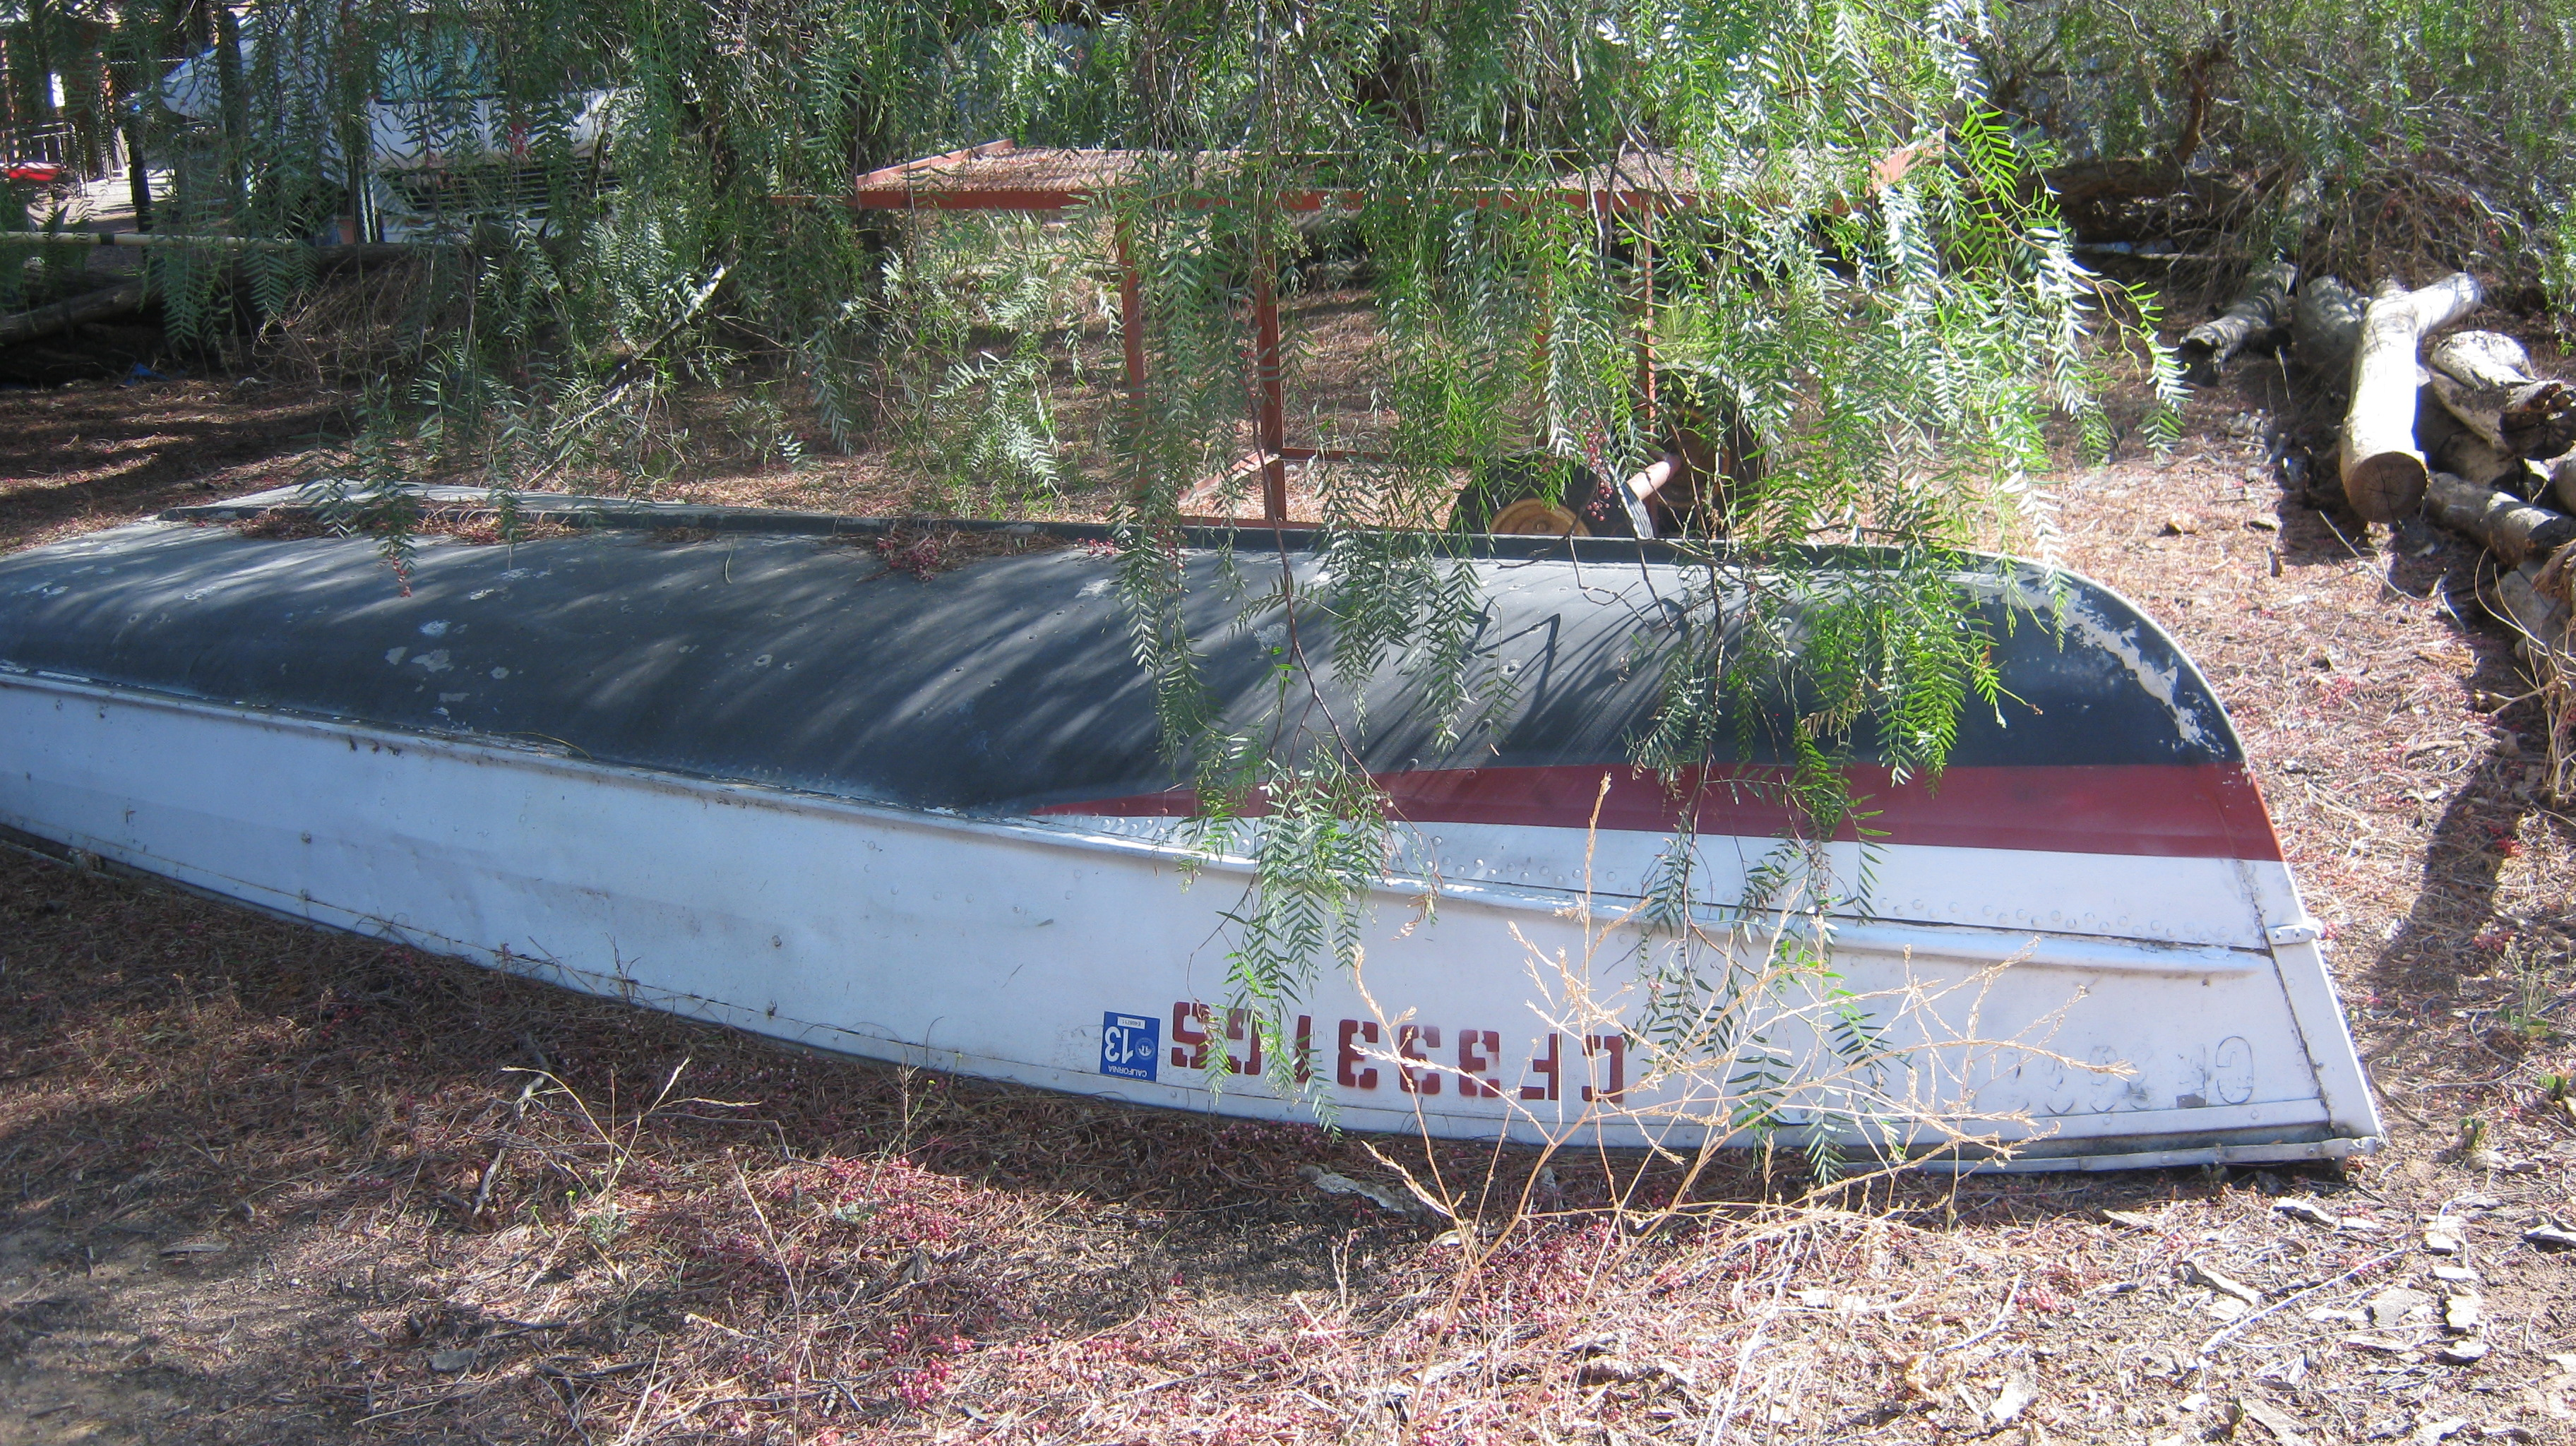 Rowing Boat and Trailer